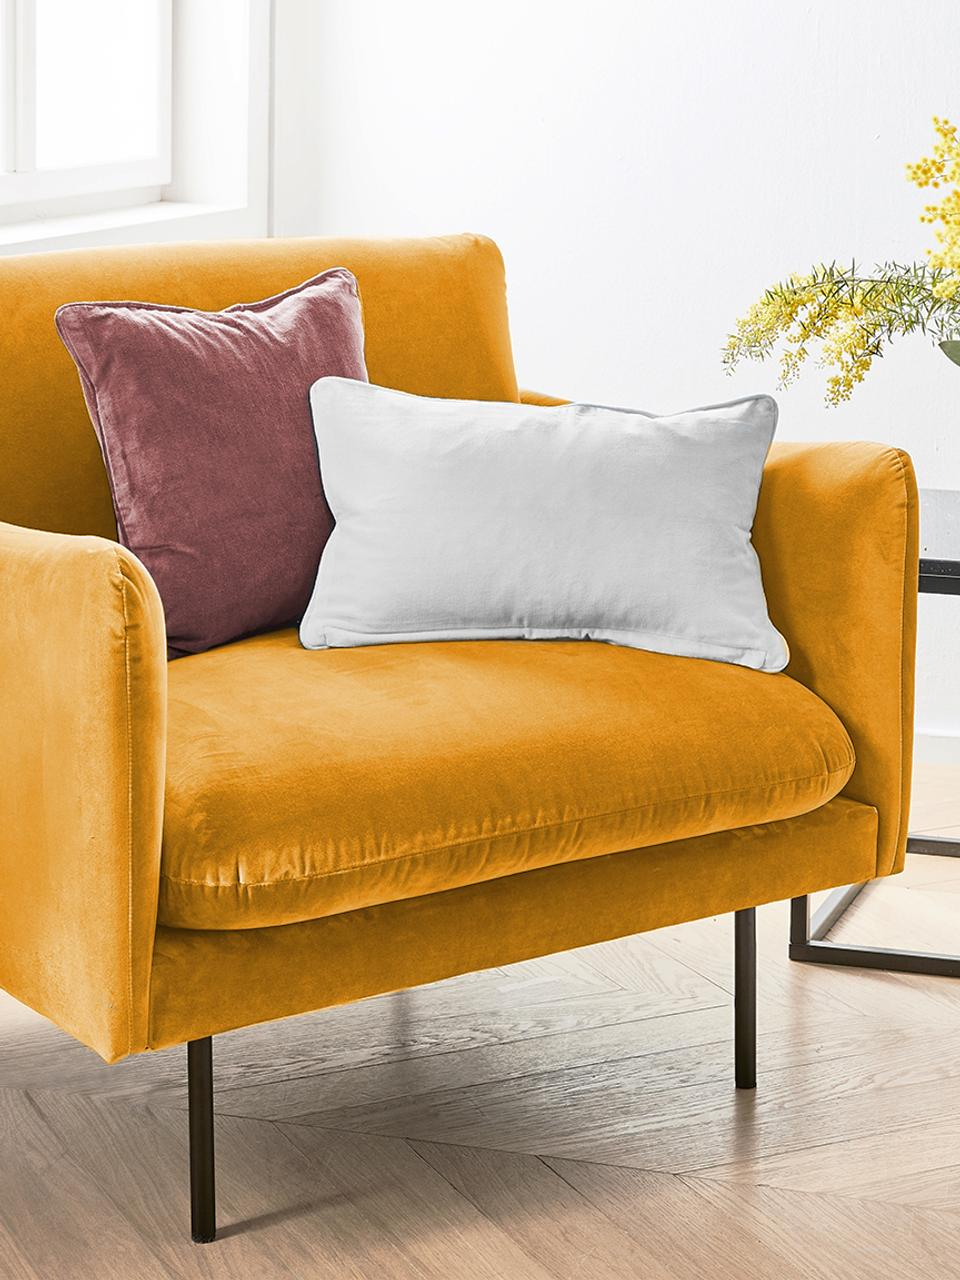 Fauteuil moderne velours jaune moutarde Moby, Velours jaune moutarde